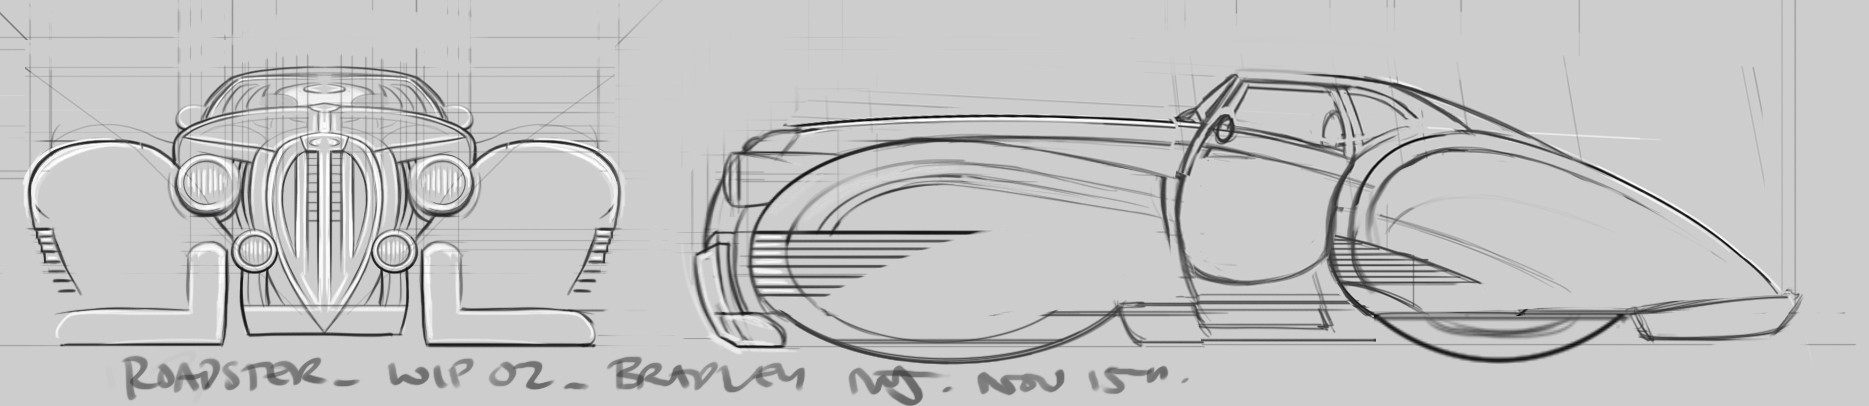 Bradley morgan johnson car concept 01 scematics wip03